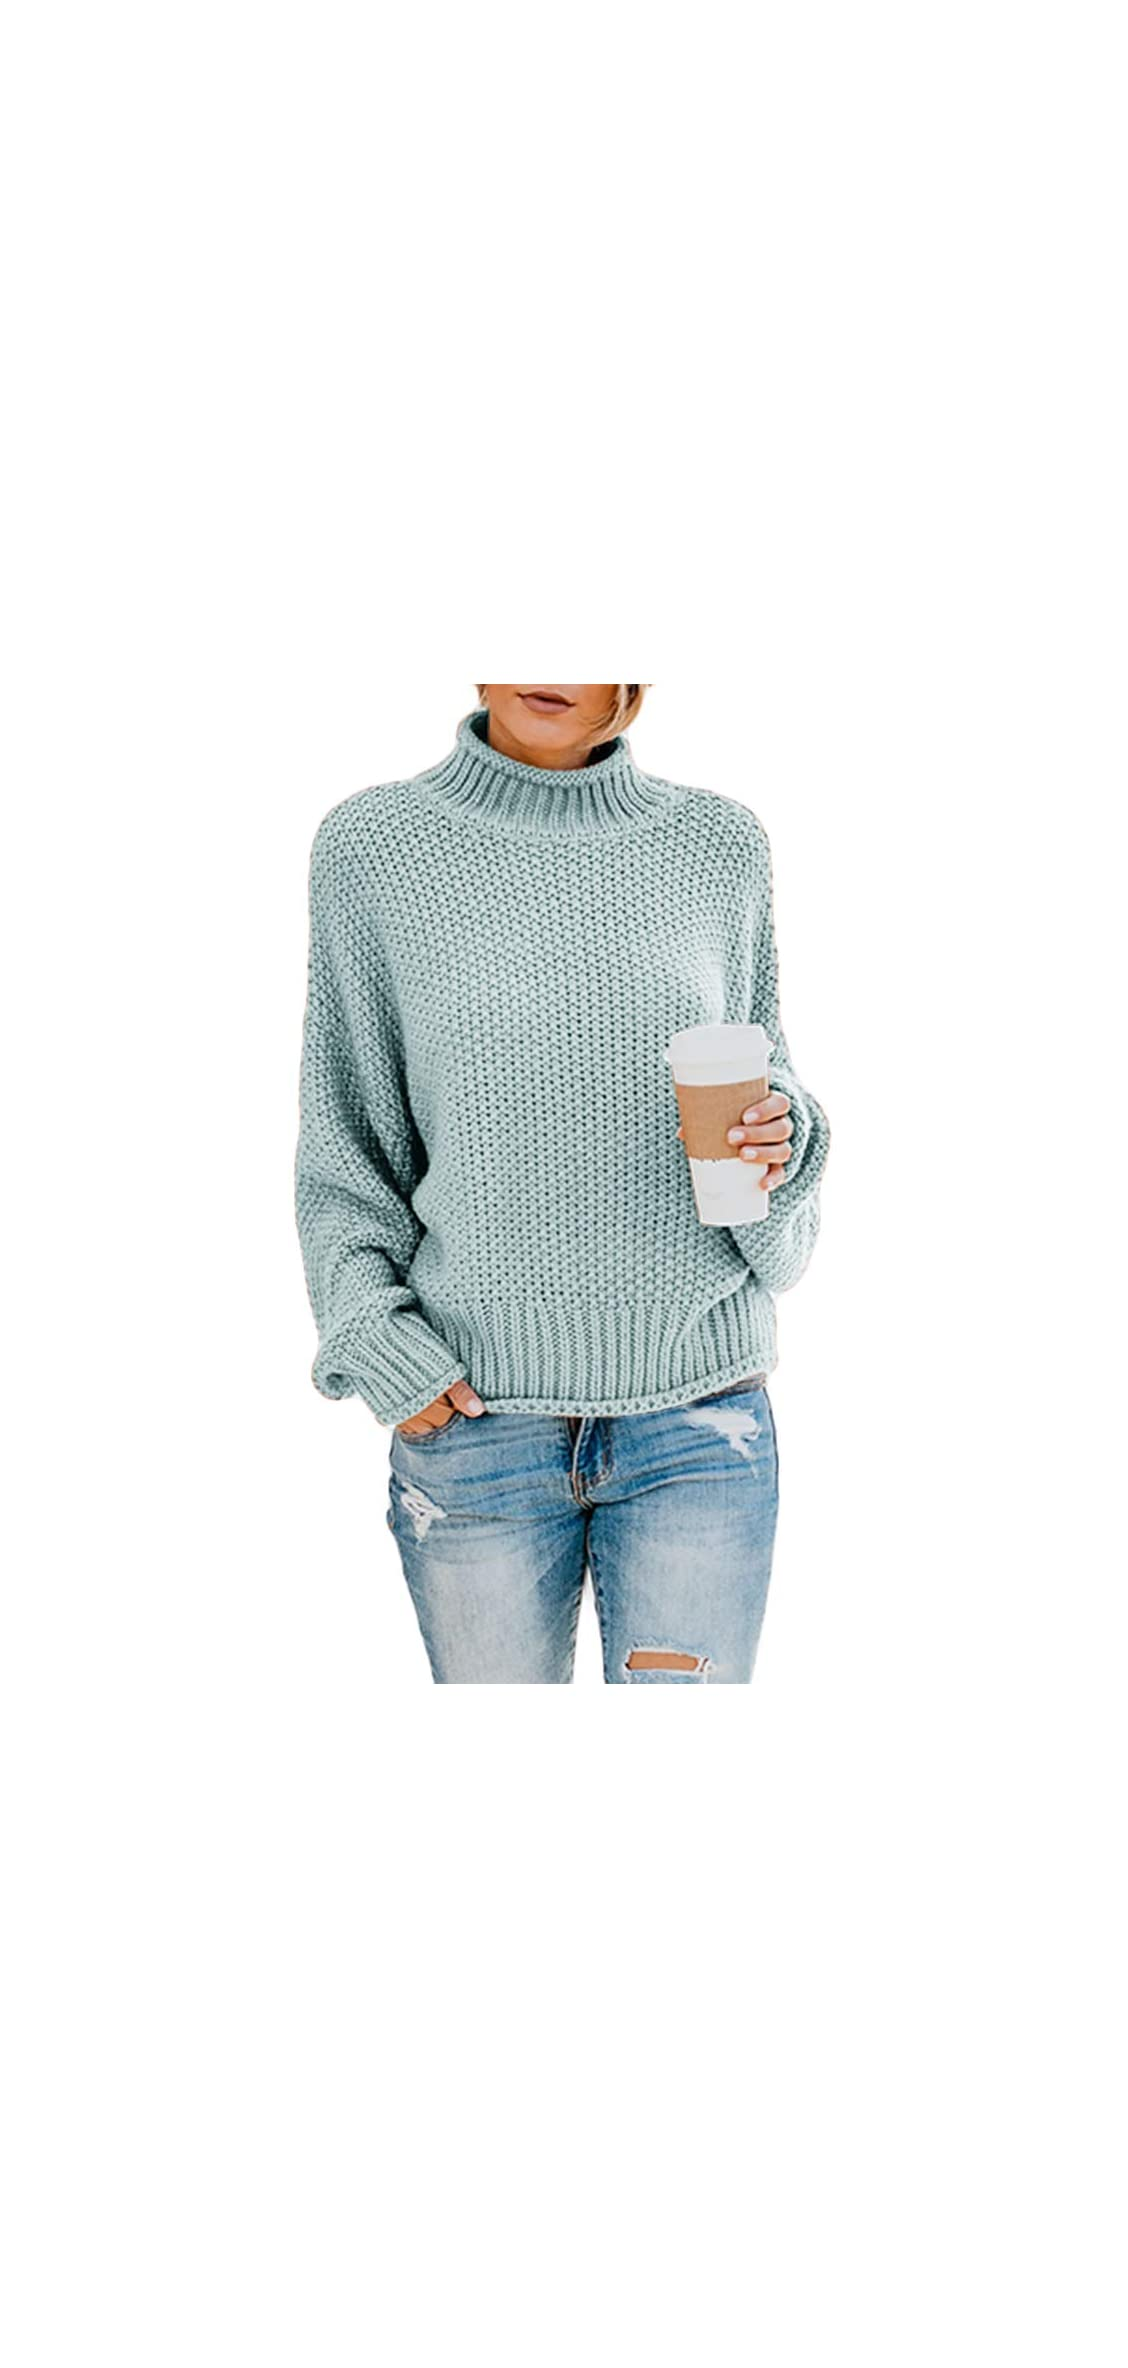 Womens Turtleneck Sweaters Batwing Long Sleeve Casual